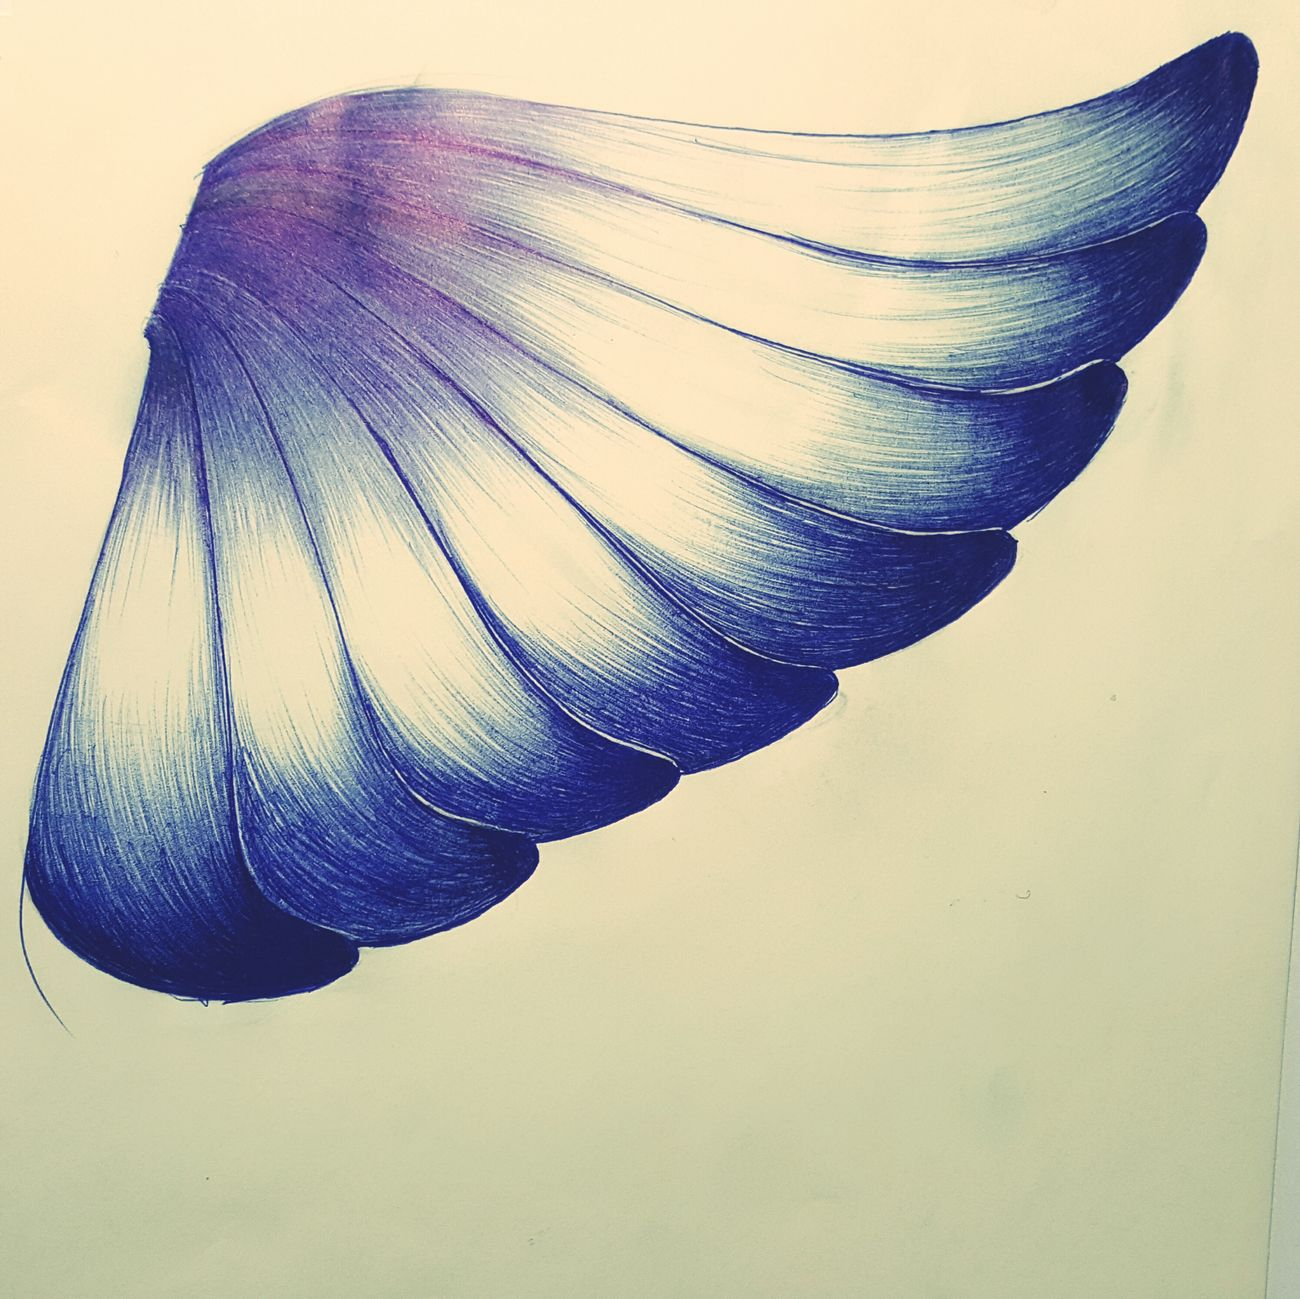 Elysian Wings Liftup Fly Drawing Pencil Drawing Sky Livelovedream Positive Vibes Life